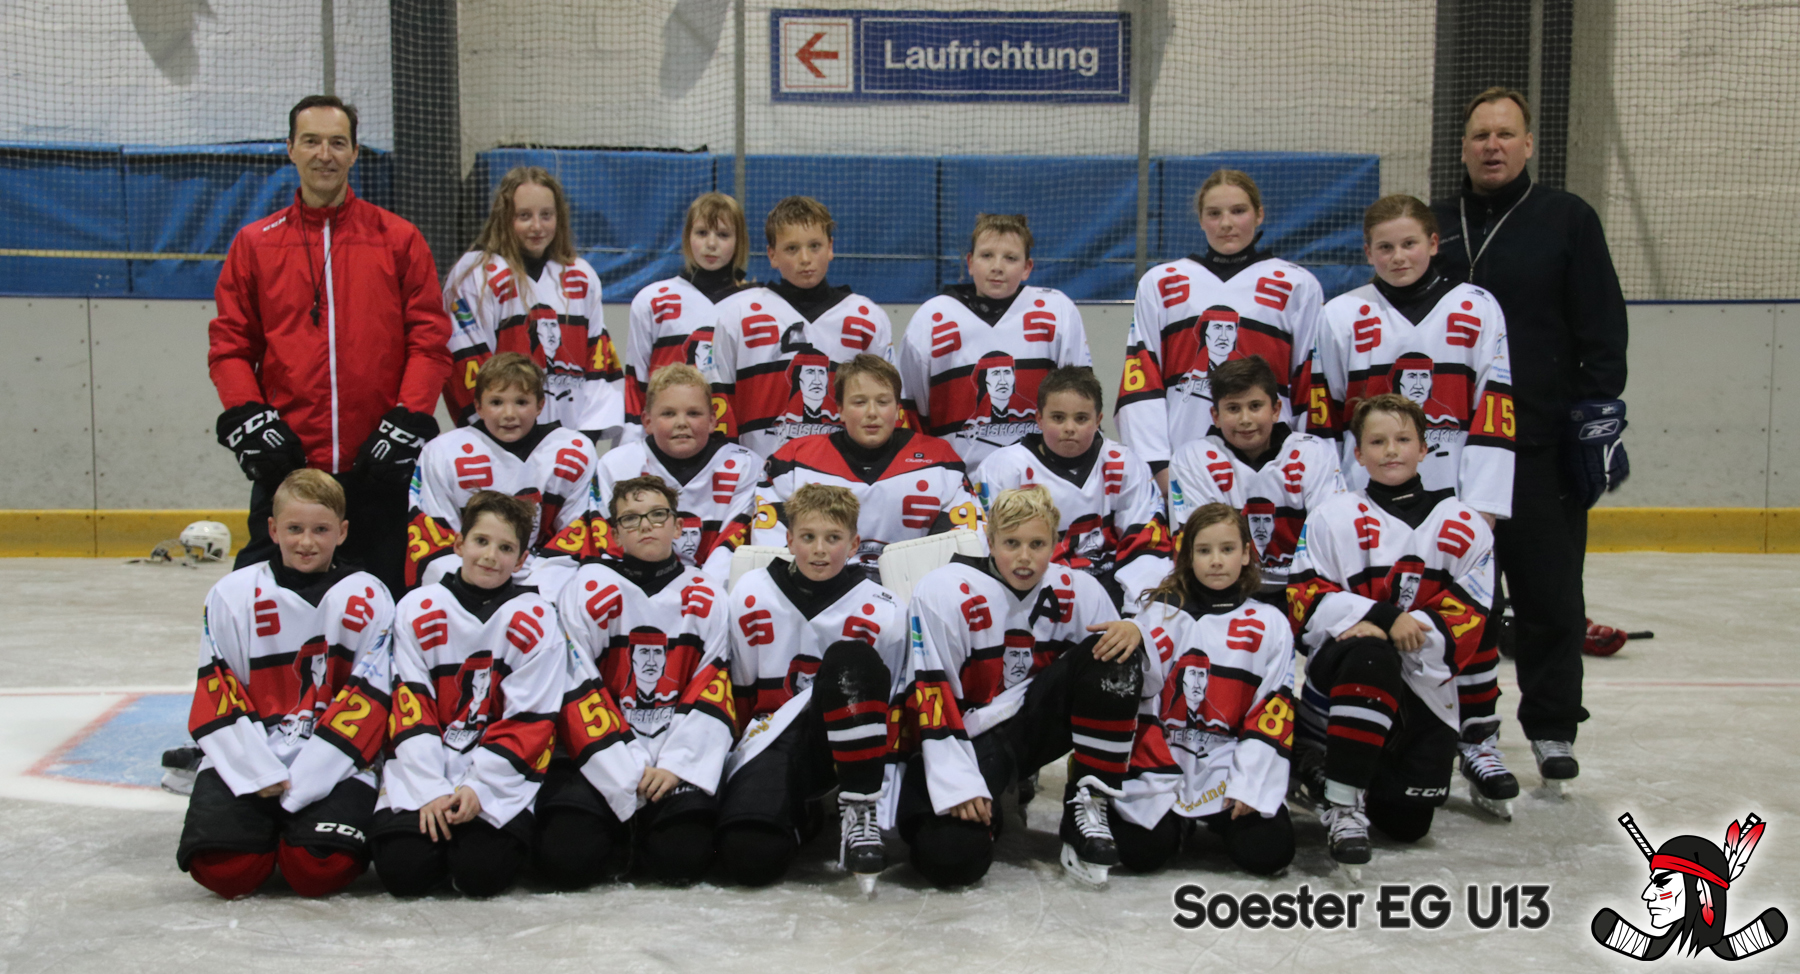 seg_u13_teamfoto_1800_marked.jpg